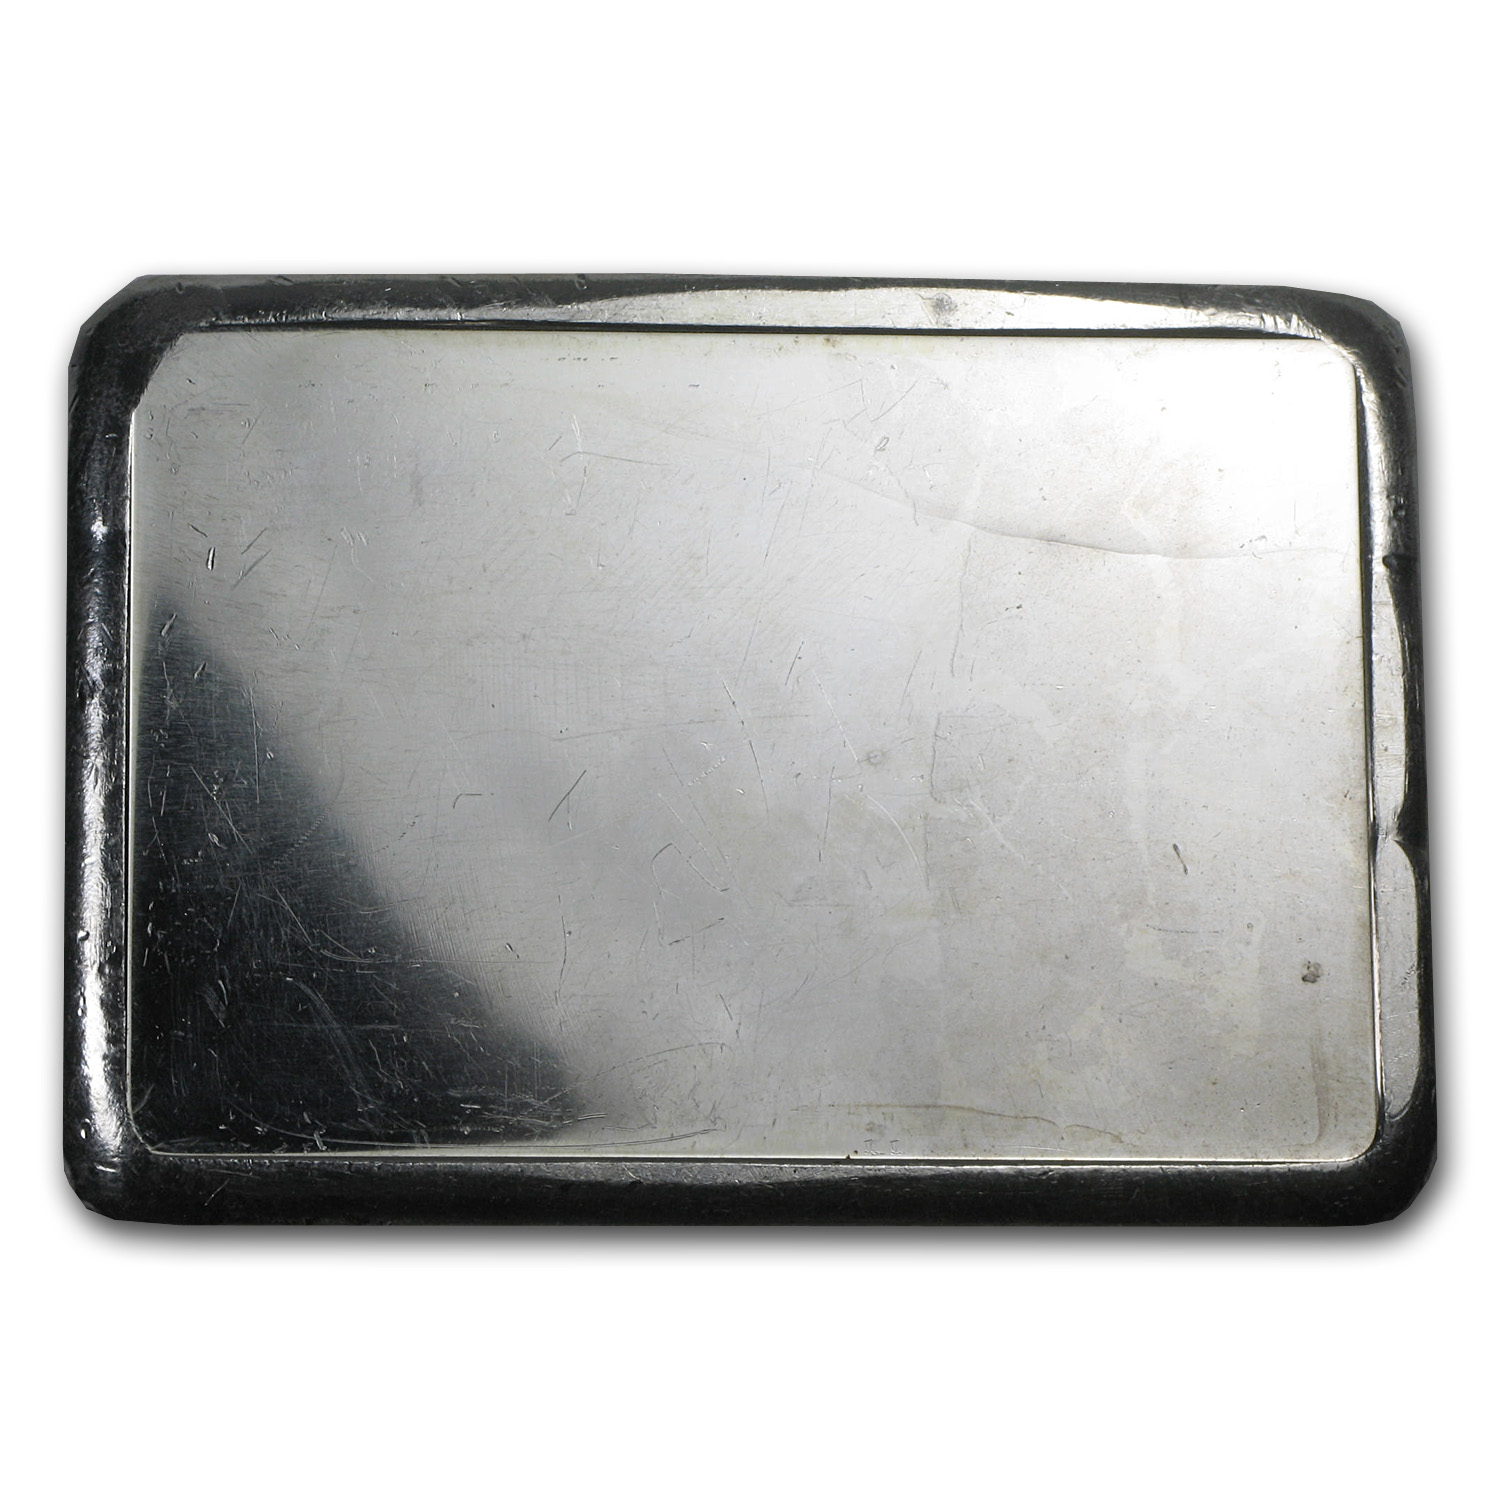 10 oz Silver Bar - RCM (Vintage)